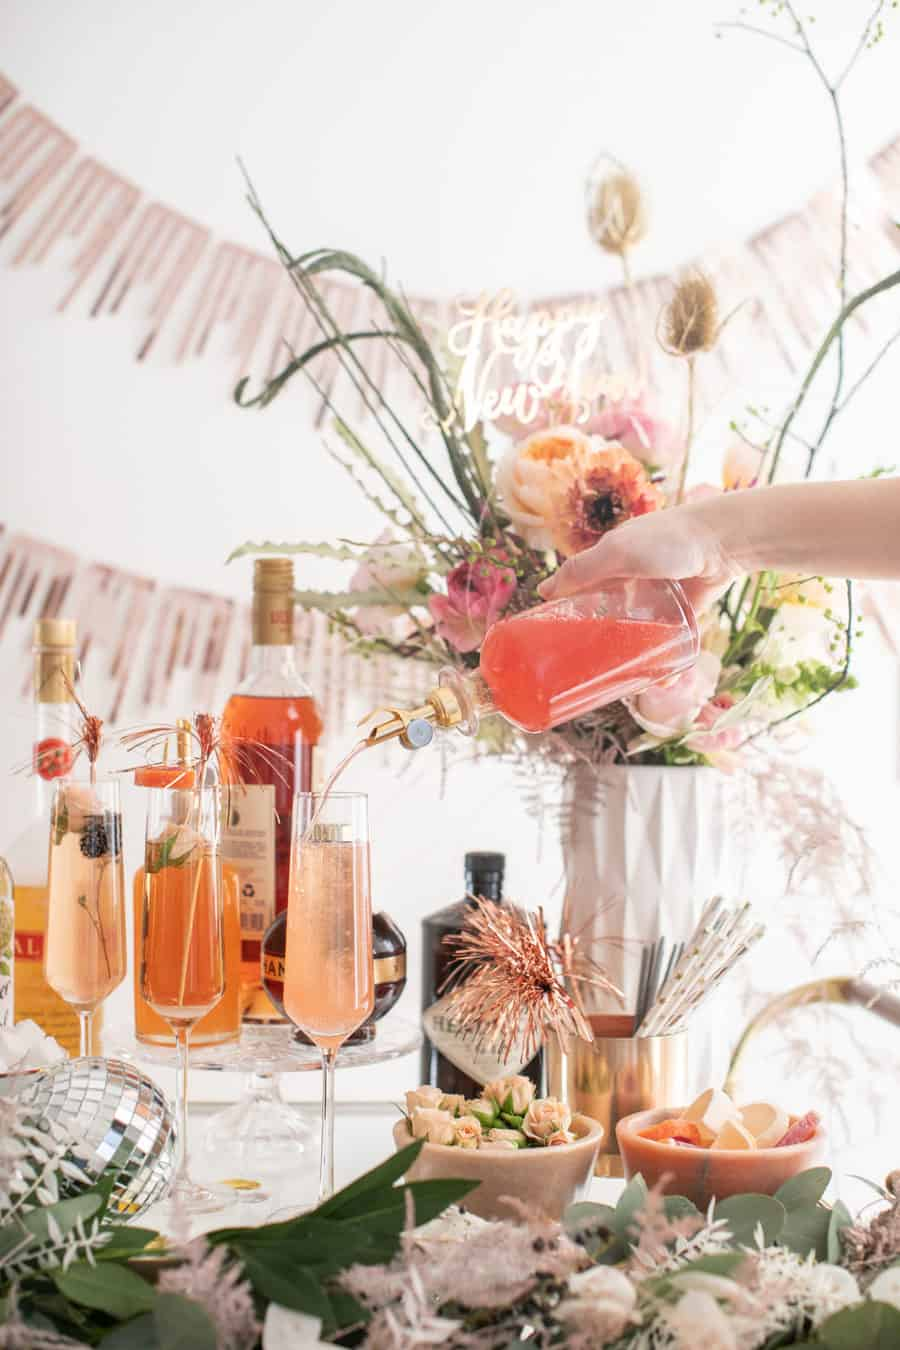 Pouring in juice to a glass of Champagne for a New Year's Eve Champagne Bar